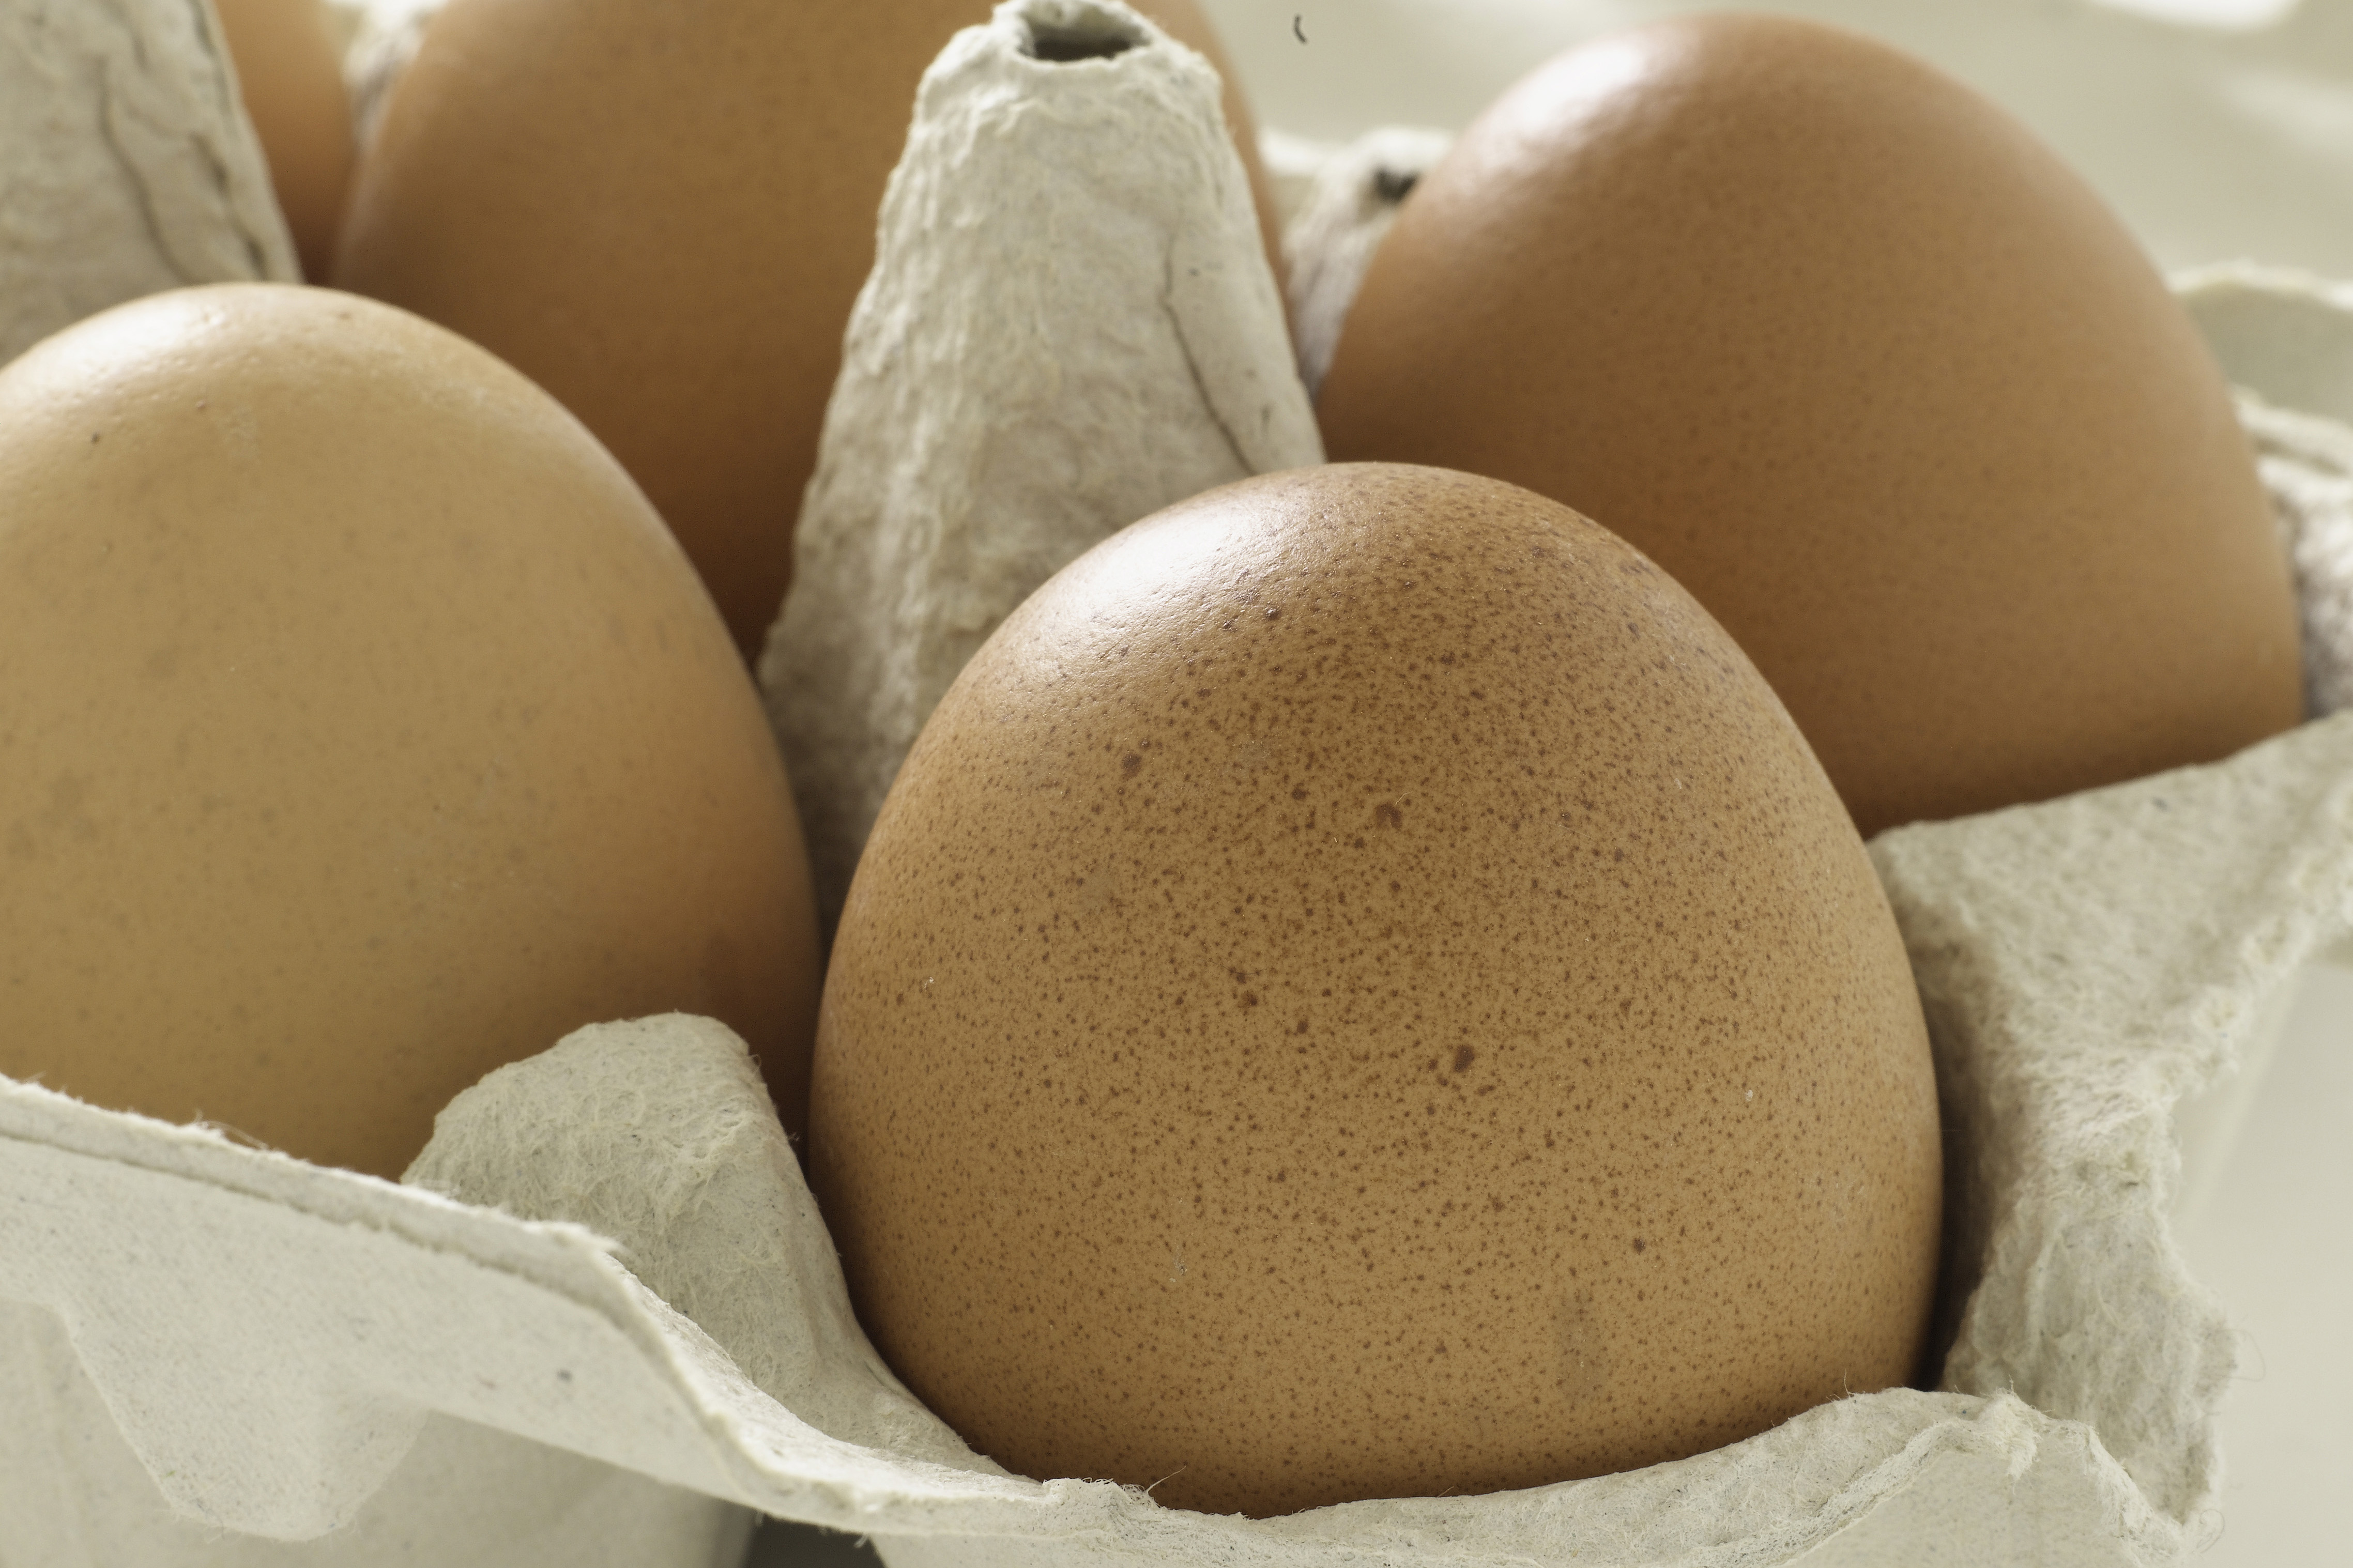 The egg labelling law allows consumers to clearly see if the eggs they're buying have been laid in a cage, barn, free range or organic system. Photo: Food and Drink/REX/Shutterstock